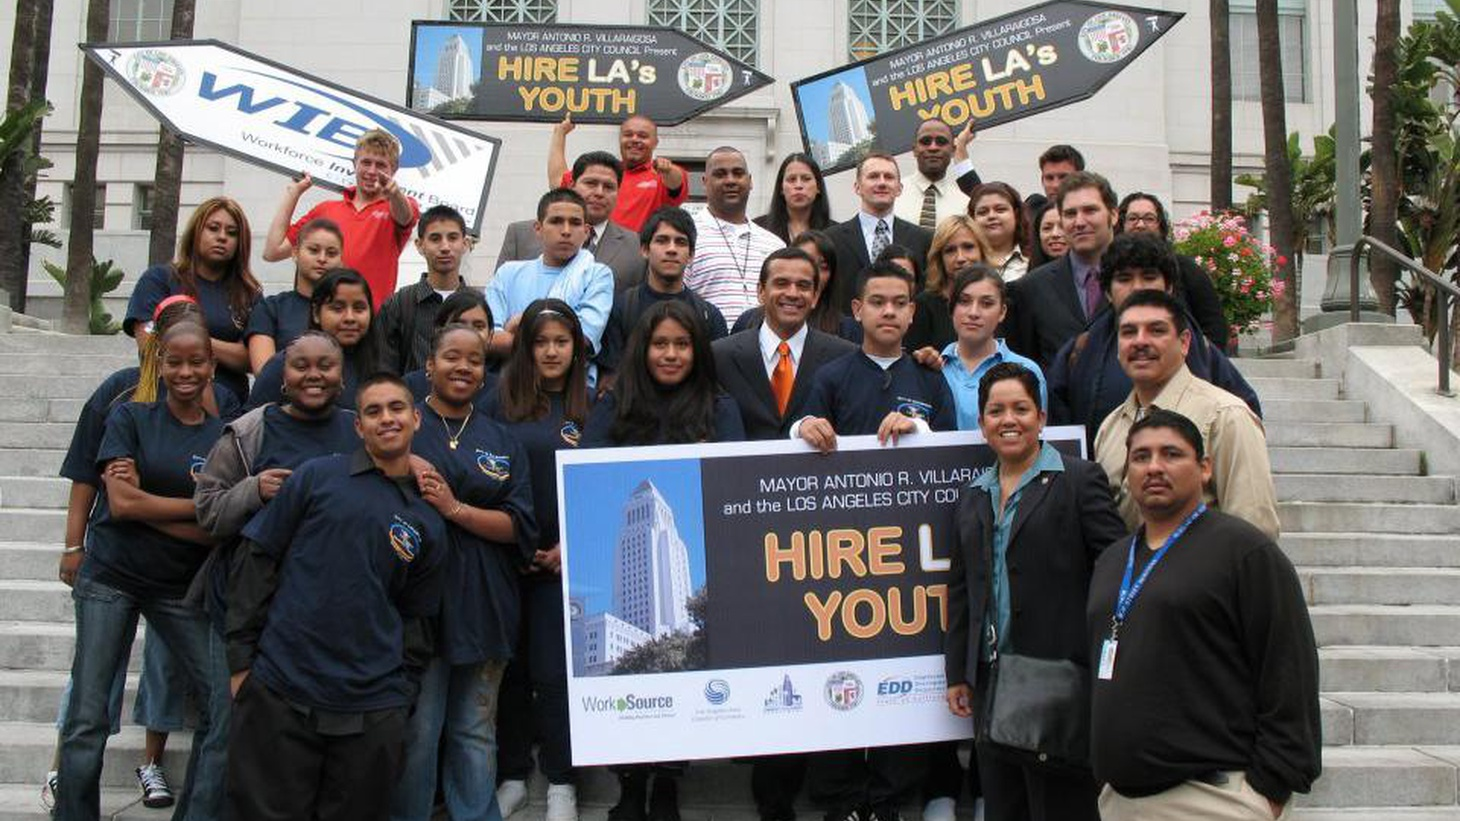 We talk with teens about the challenges they face in finding summer jobs and hear about the LA Chamber of Commerce's mock hiring process that provides help.